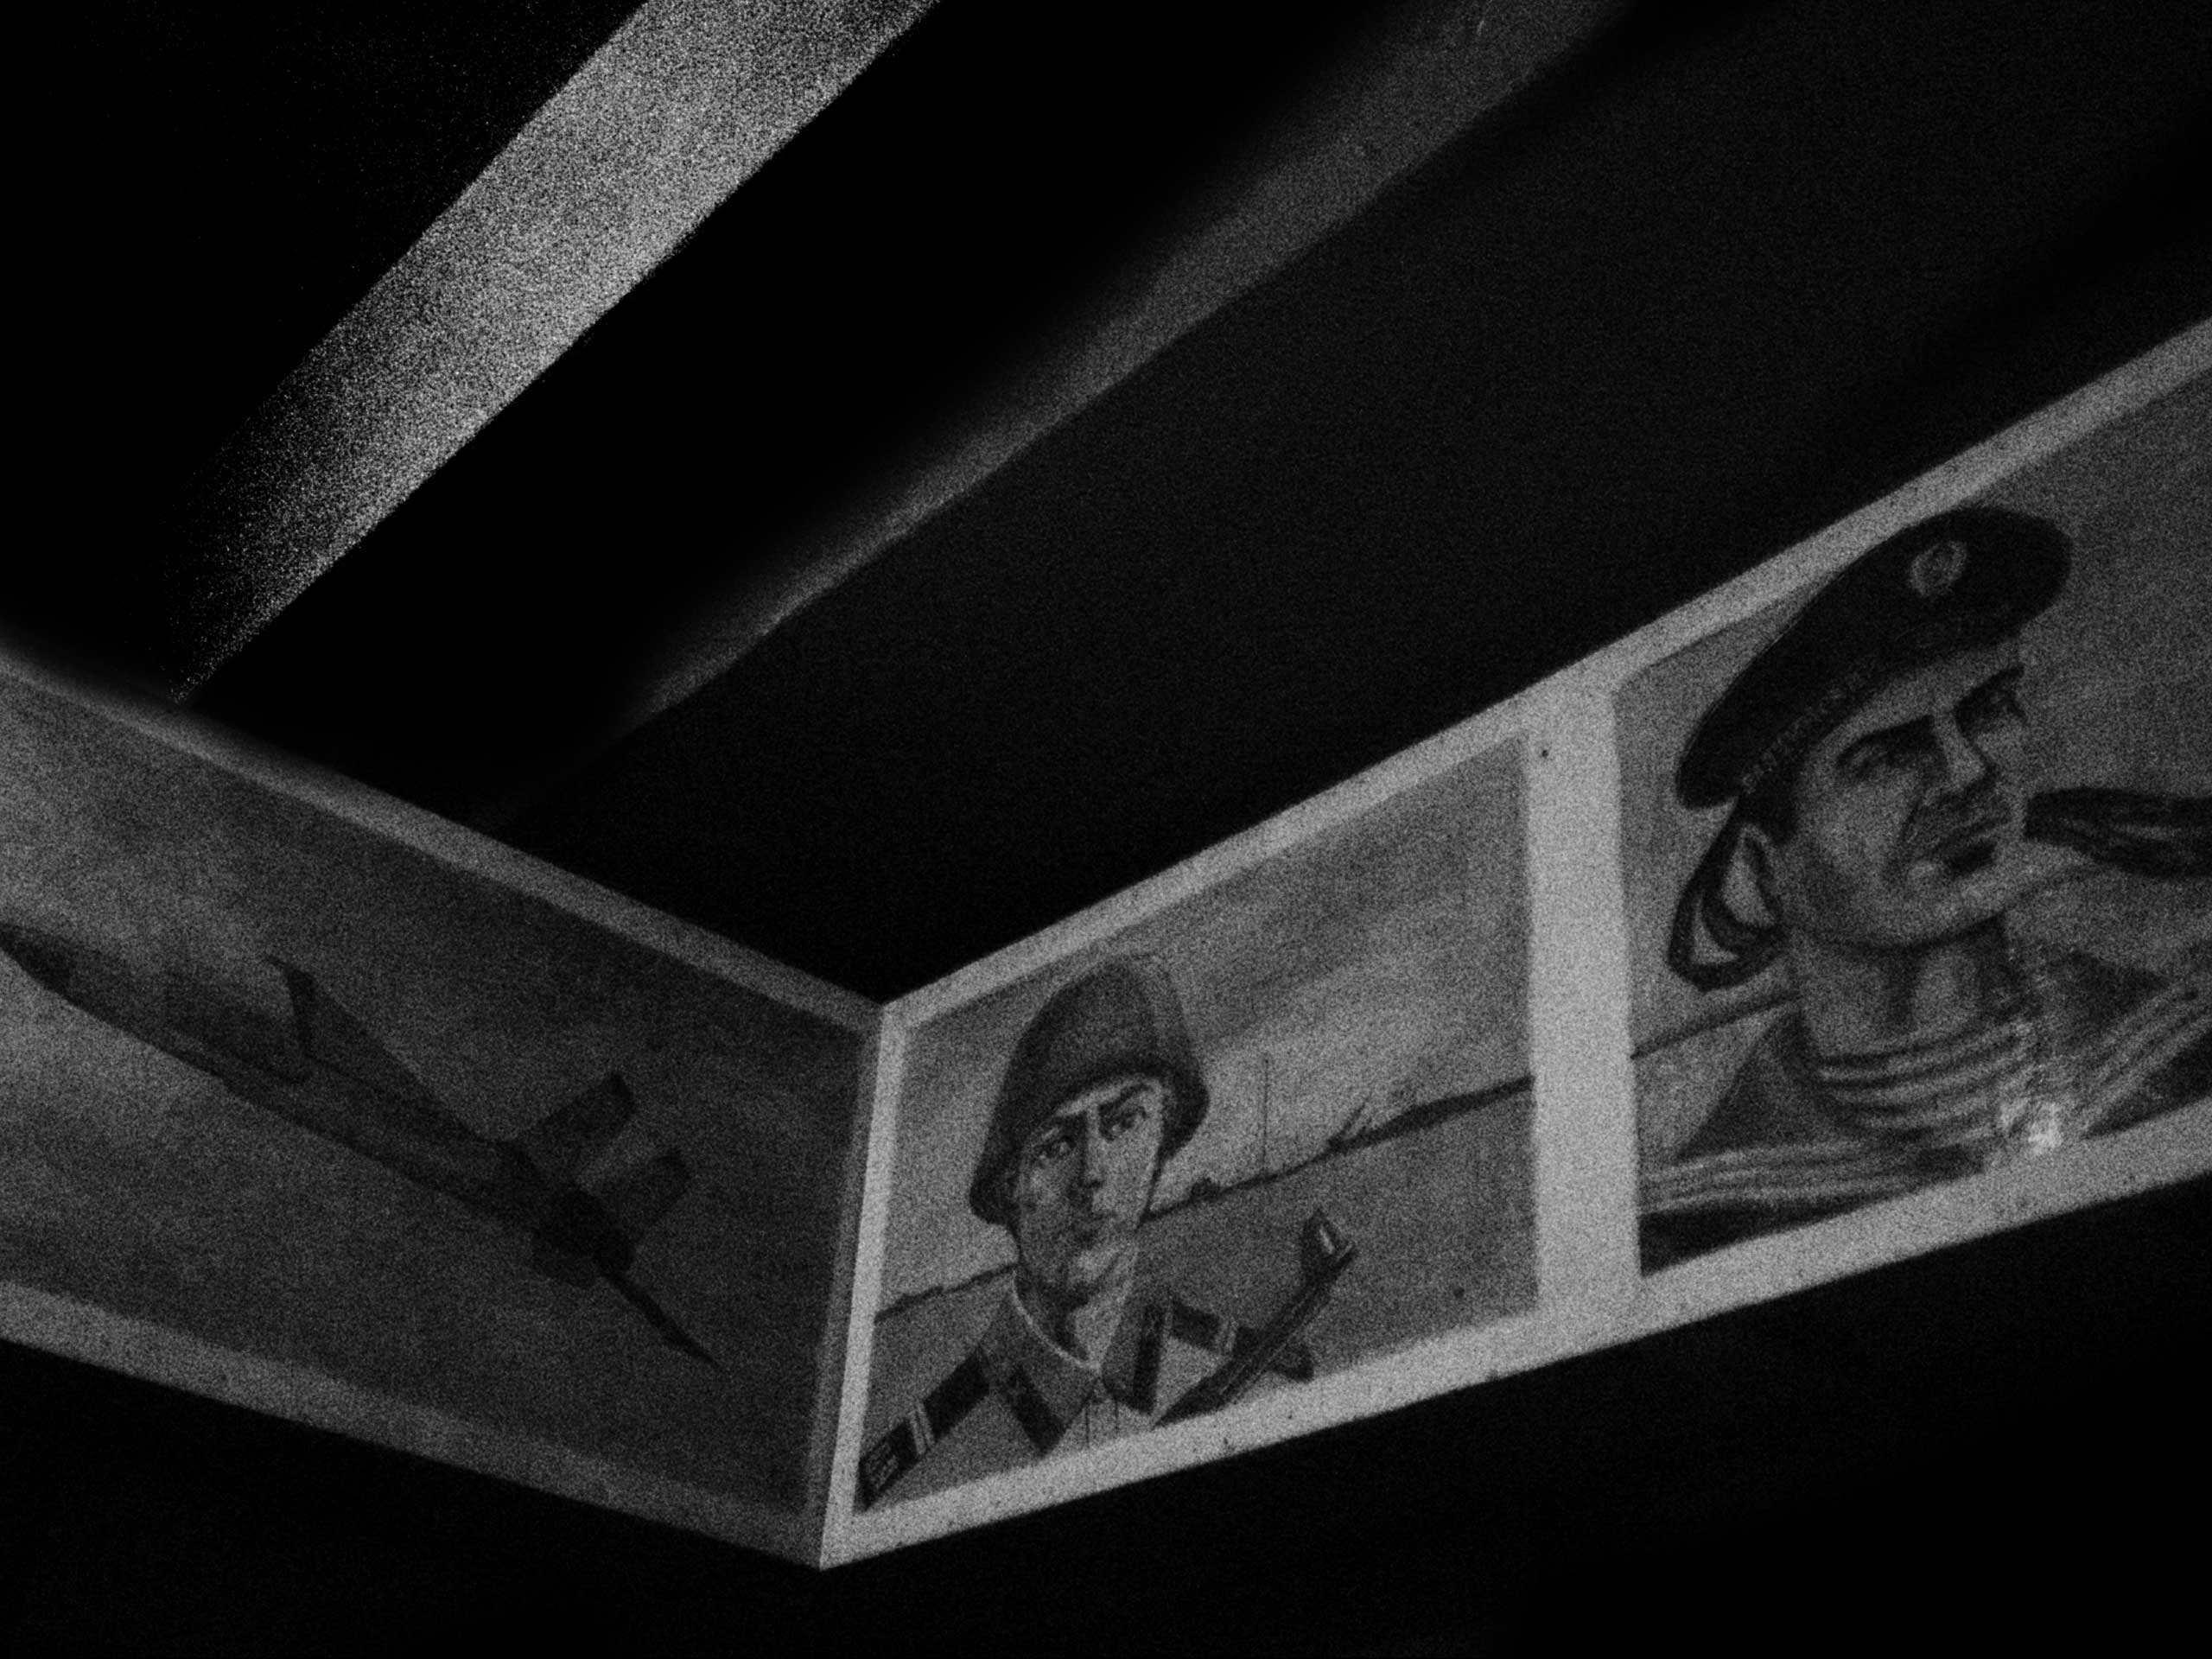 The shelter in Trudovski was built in the event of a nuclear fallout. It is emblazoned with Soviet military iconography like these portraits of Army soldiers and Navy sailors. Trudovski, Donetsk Oblast, Ukraine. Oct. 18, 2014.